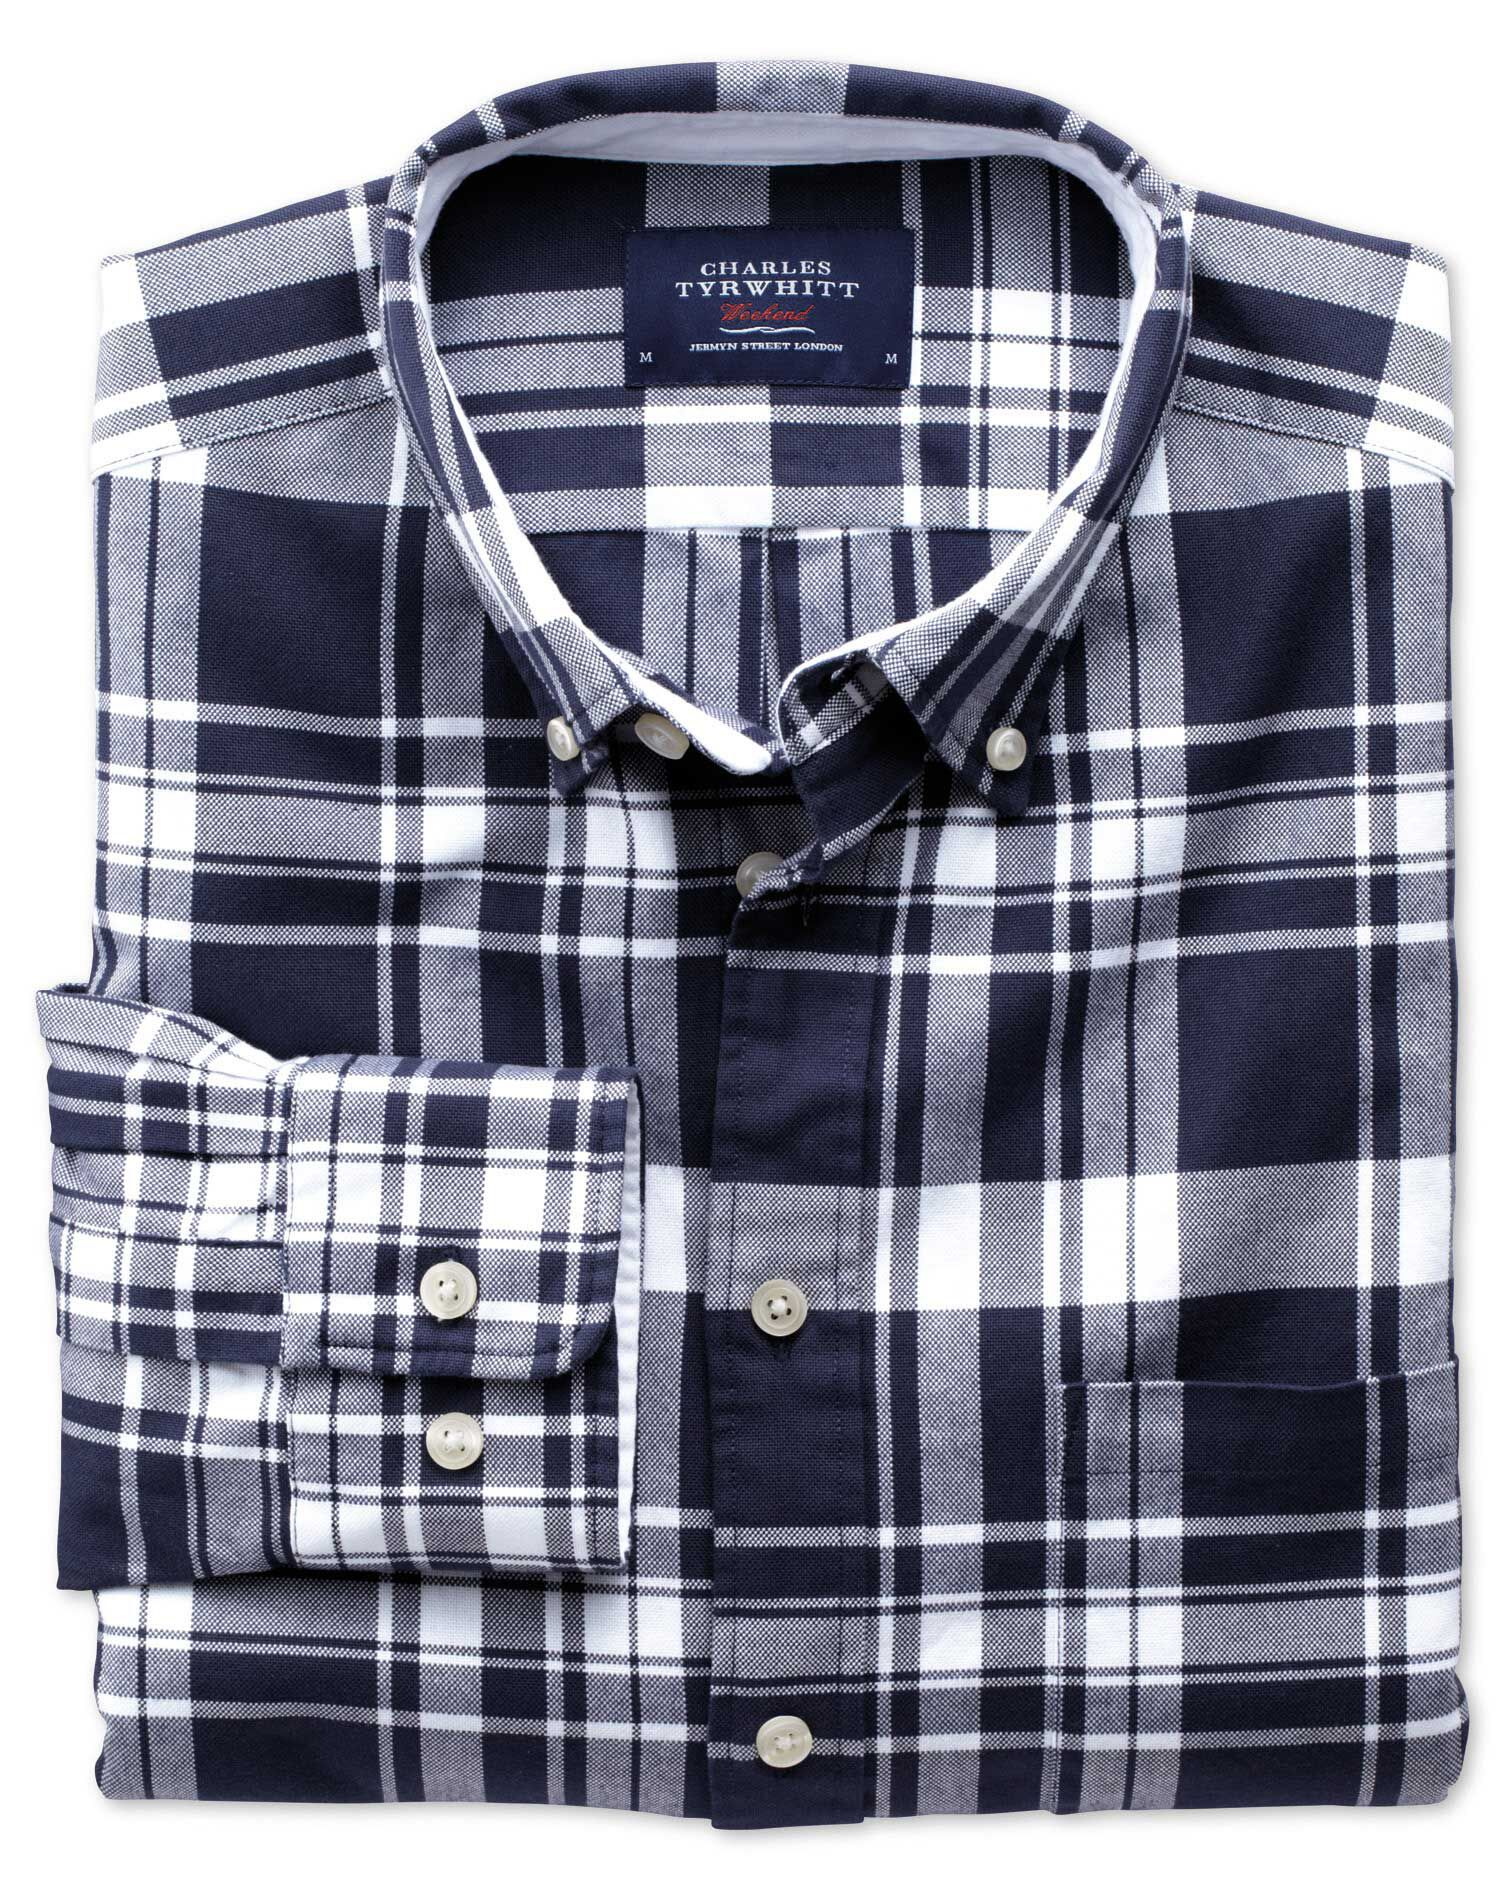 Extra Slim Fit Navy and White Check Washed Oxford Cotton Shirt Single Cuff Size XS by Charles Tyrwhi